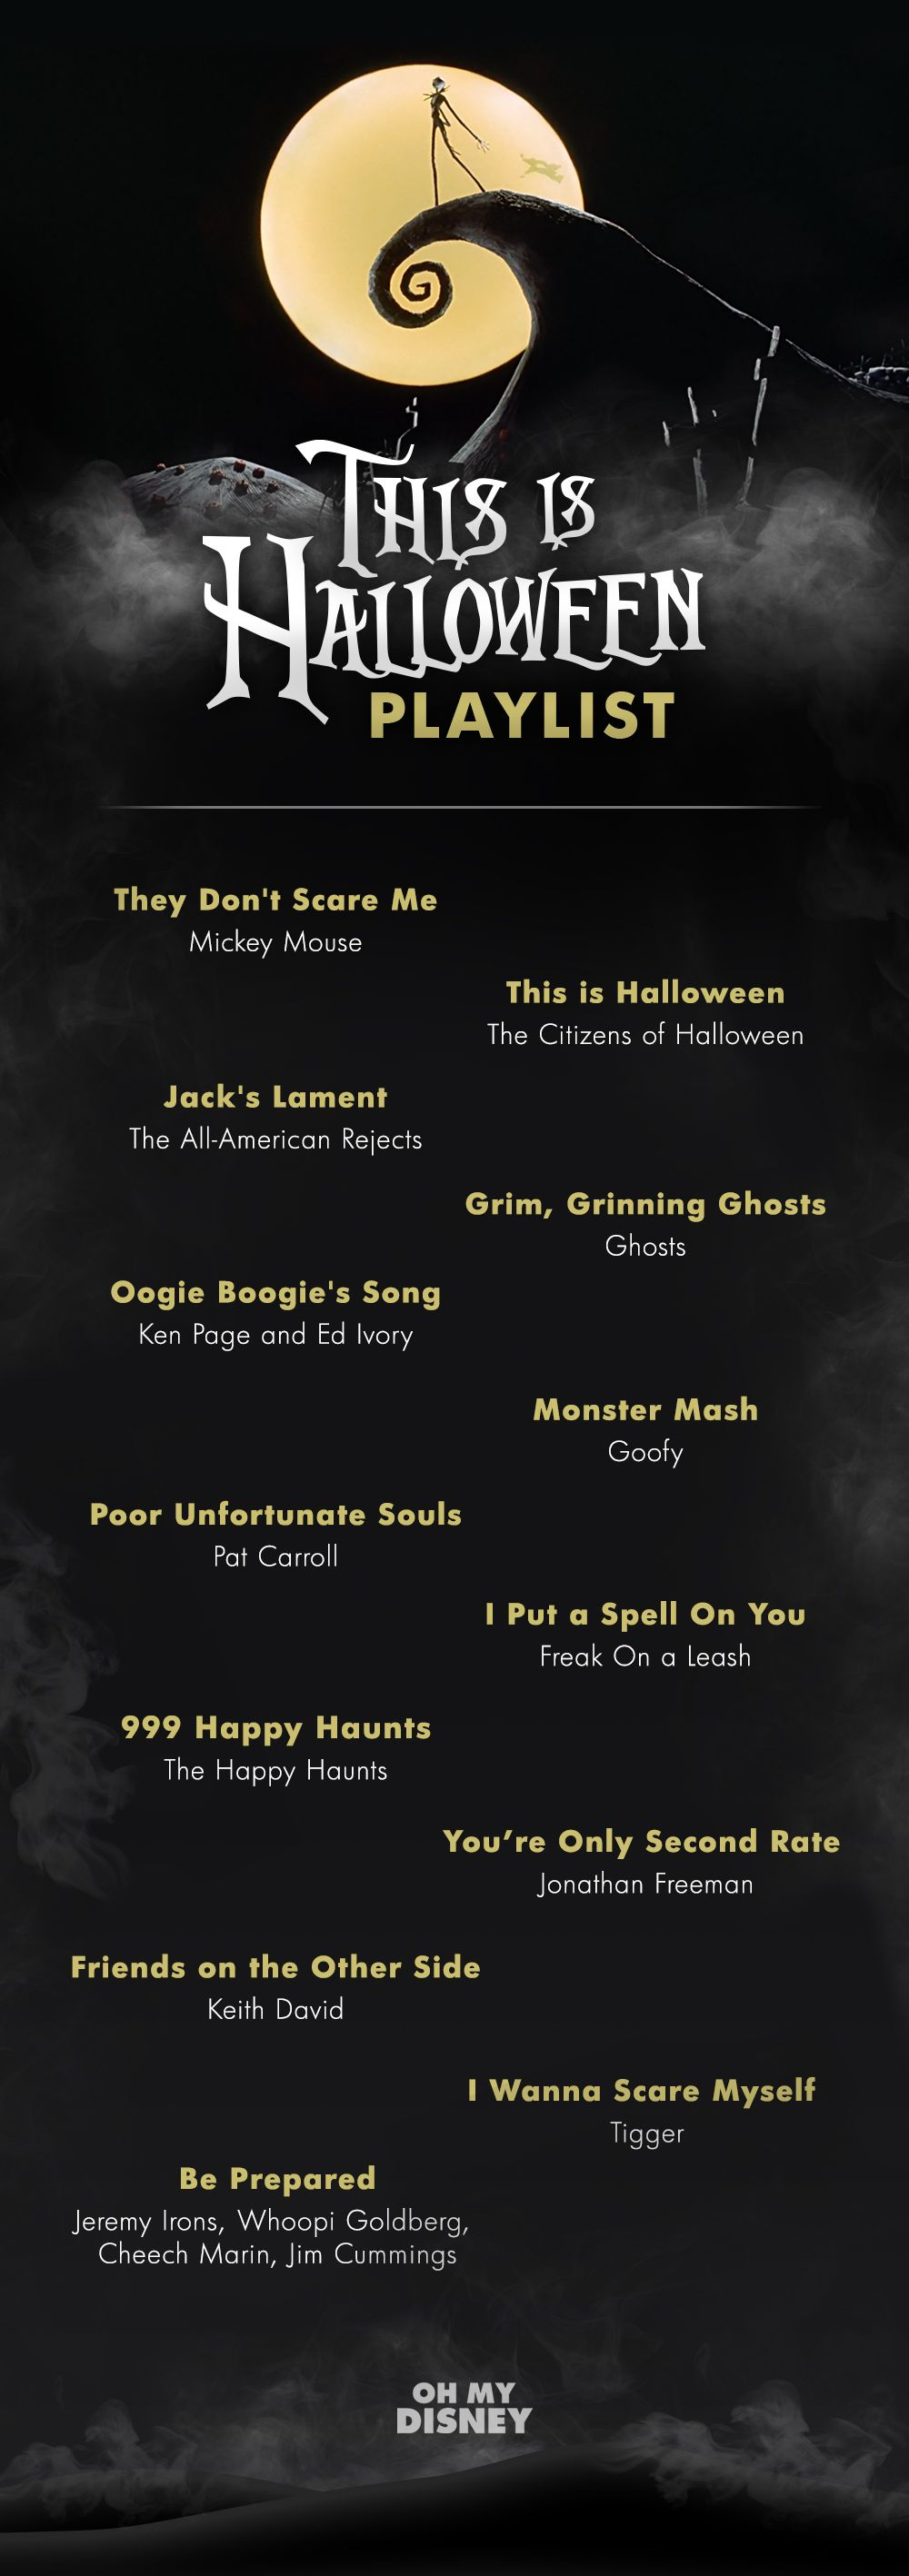 This is Halloween A Super Spooky Playlist Perfect for All